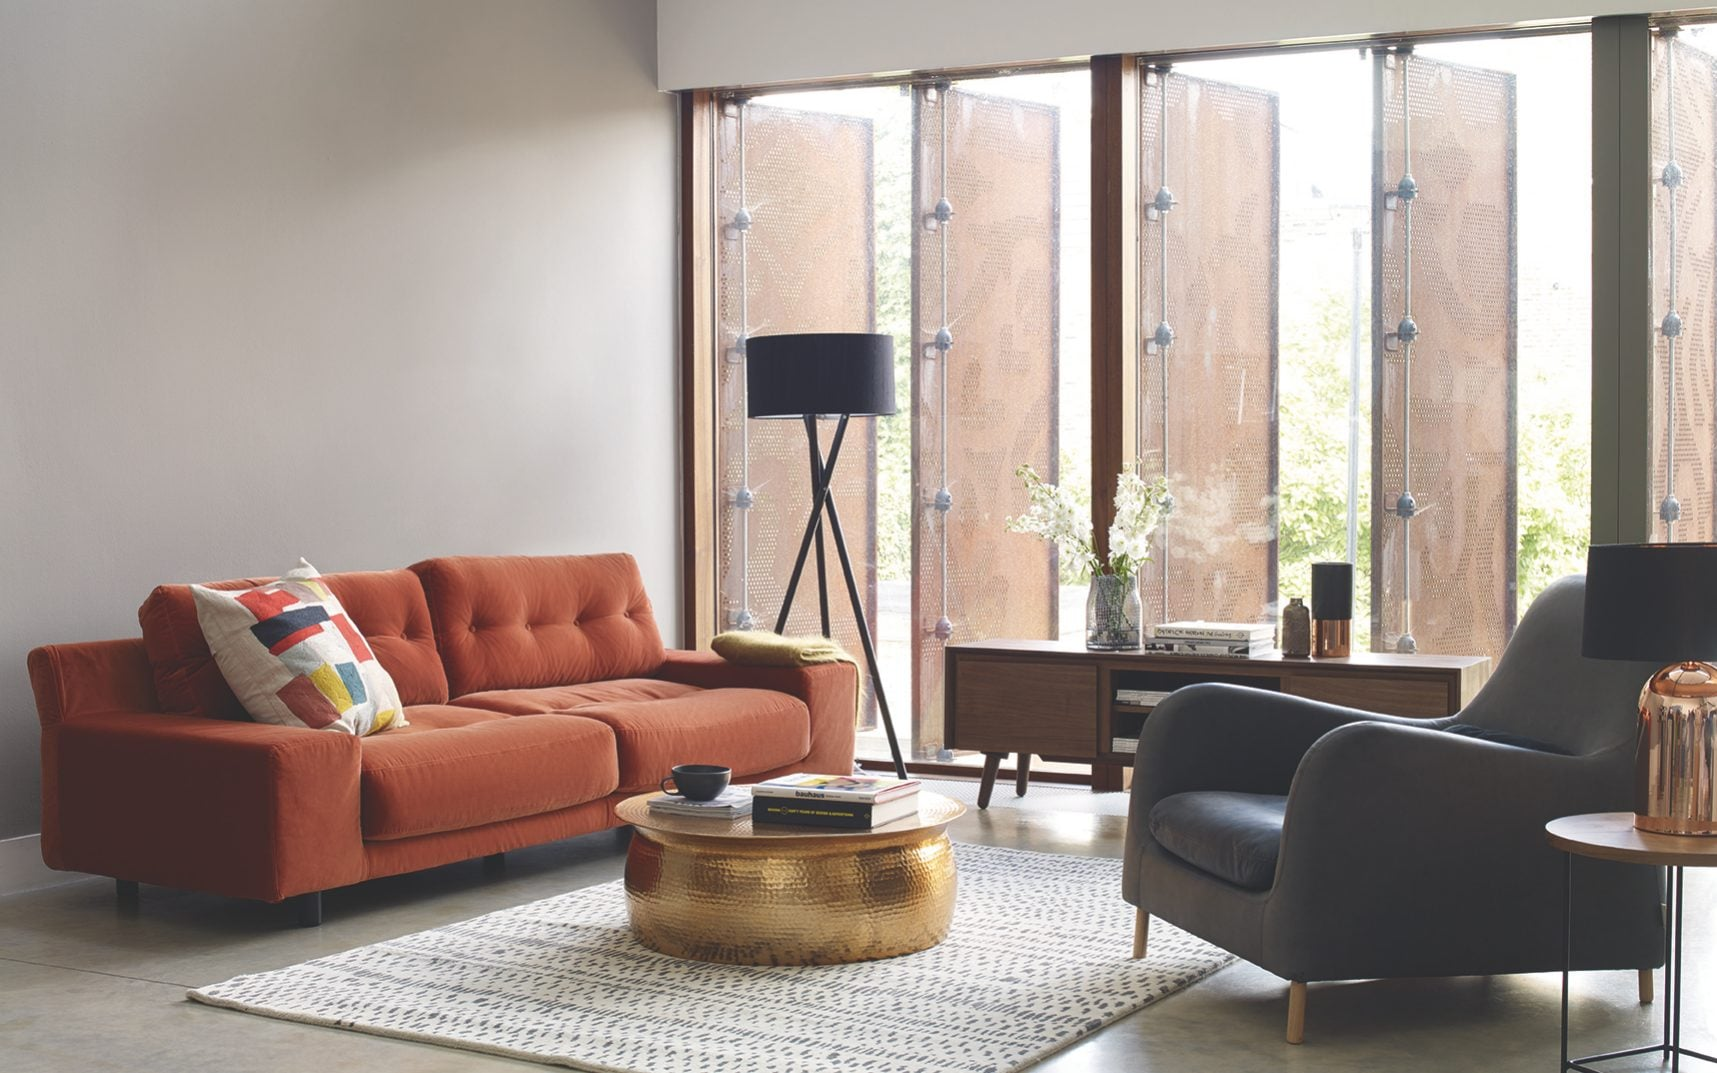 modern living room chairs uk orange idea comfy and stylish how to choose the perfect sofa hendricks in